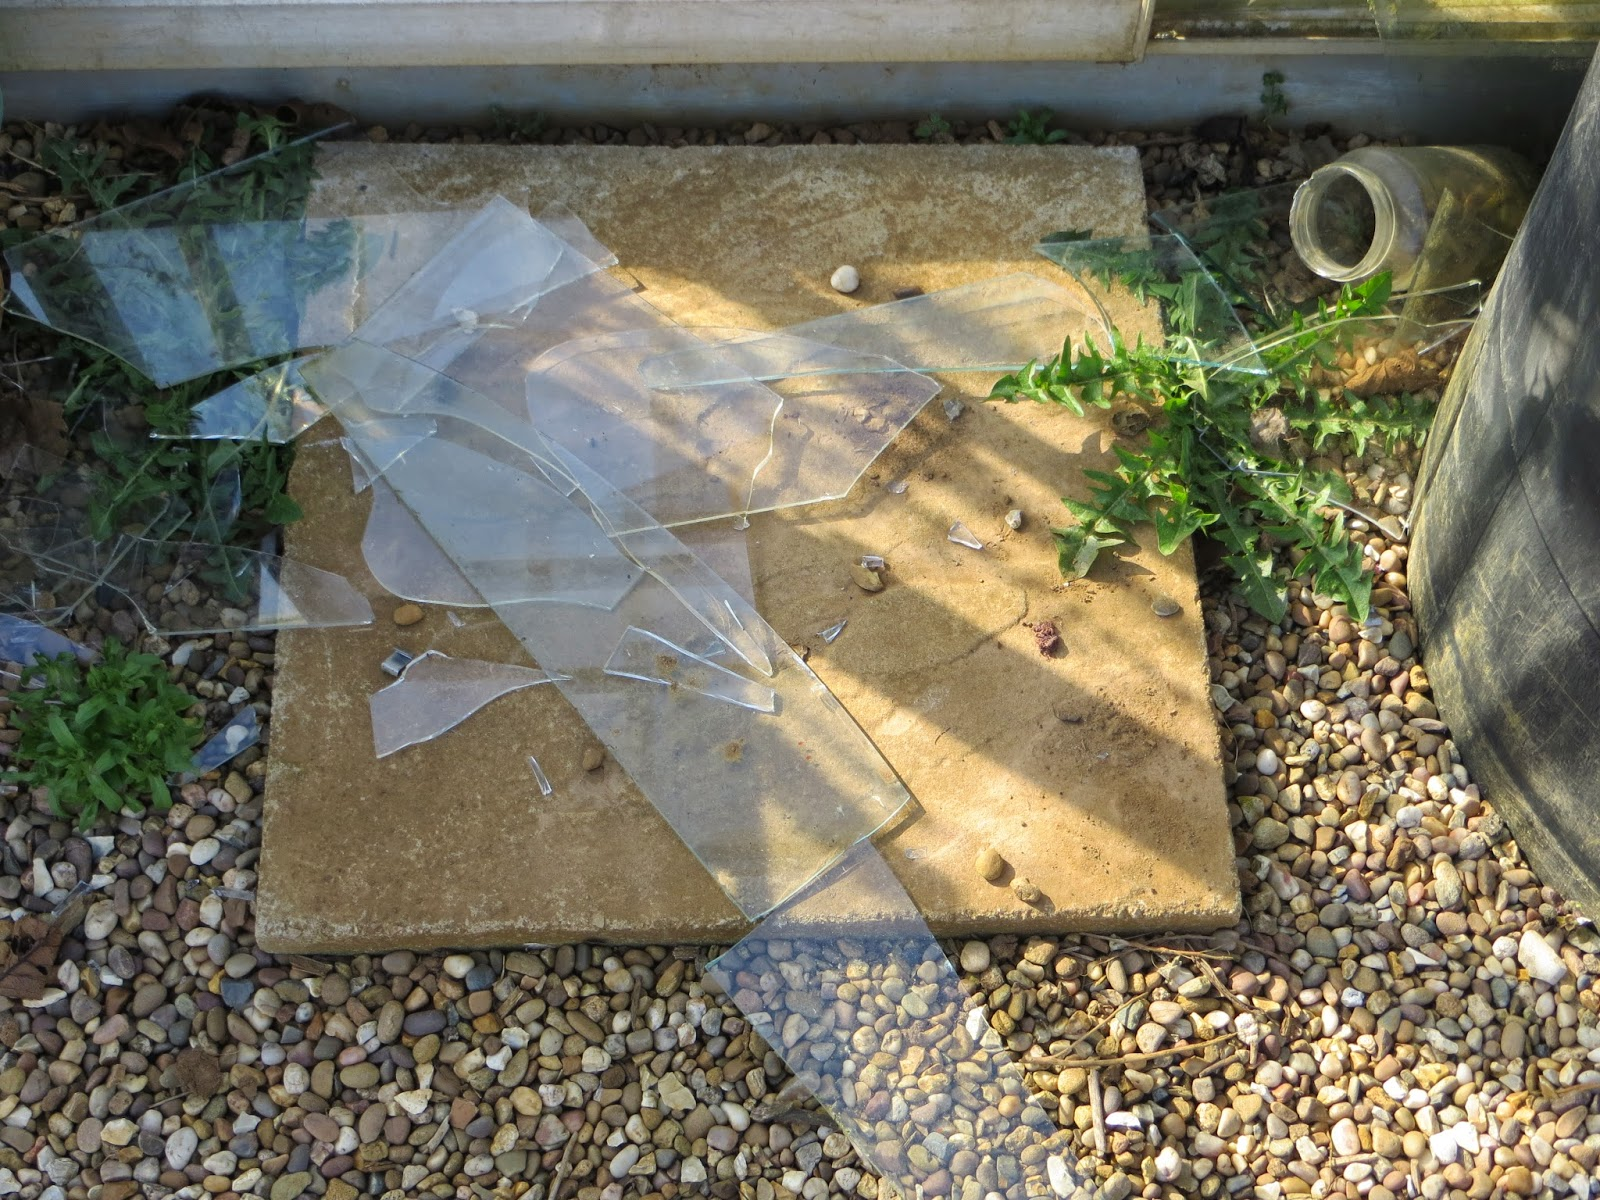 greenhouse glass broken